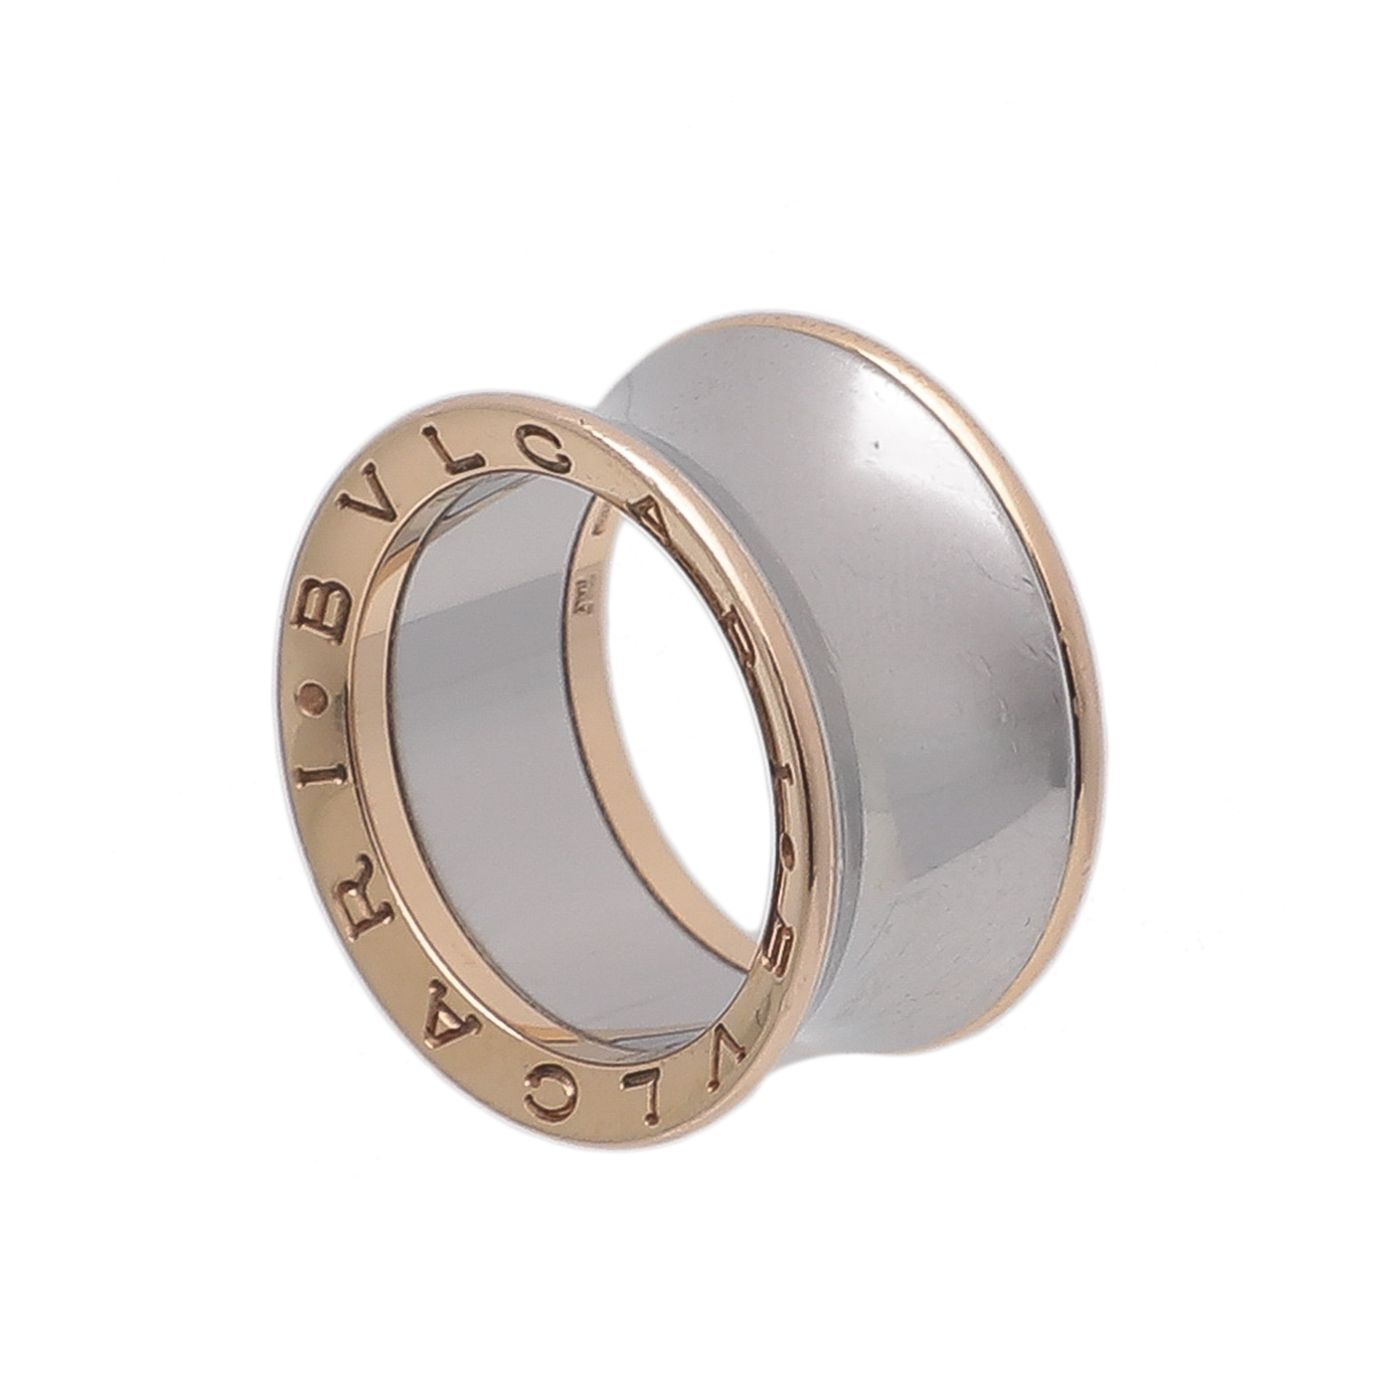 Bvlgari 18K Pink Gold and Steel Anish Kapoor Ring 56